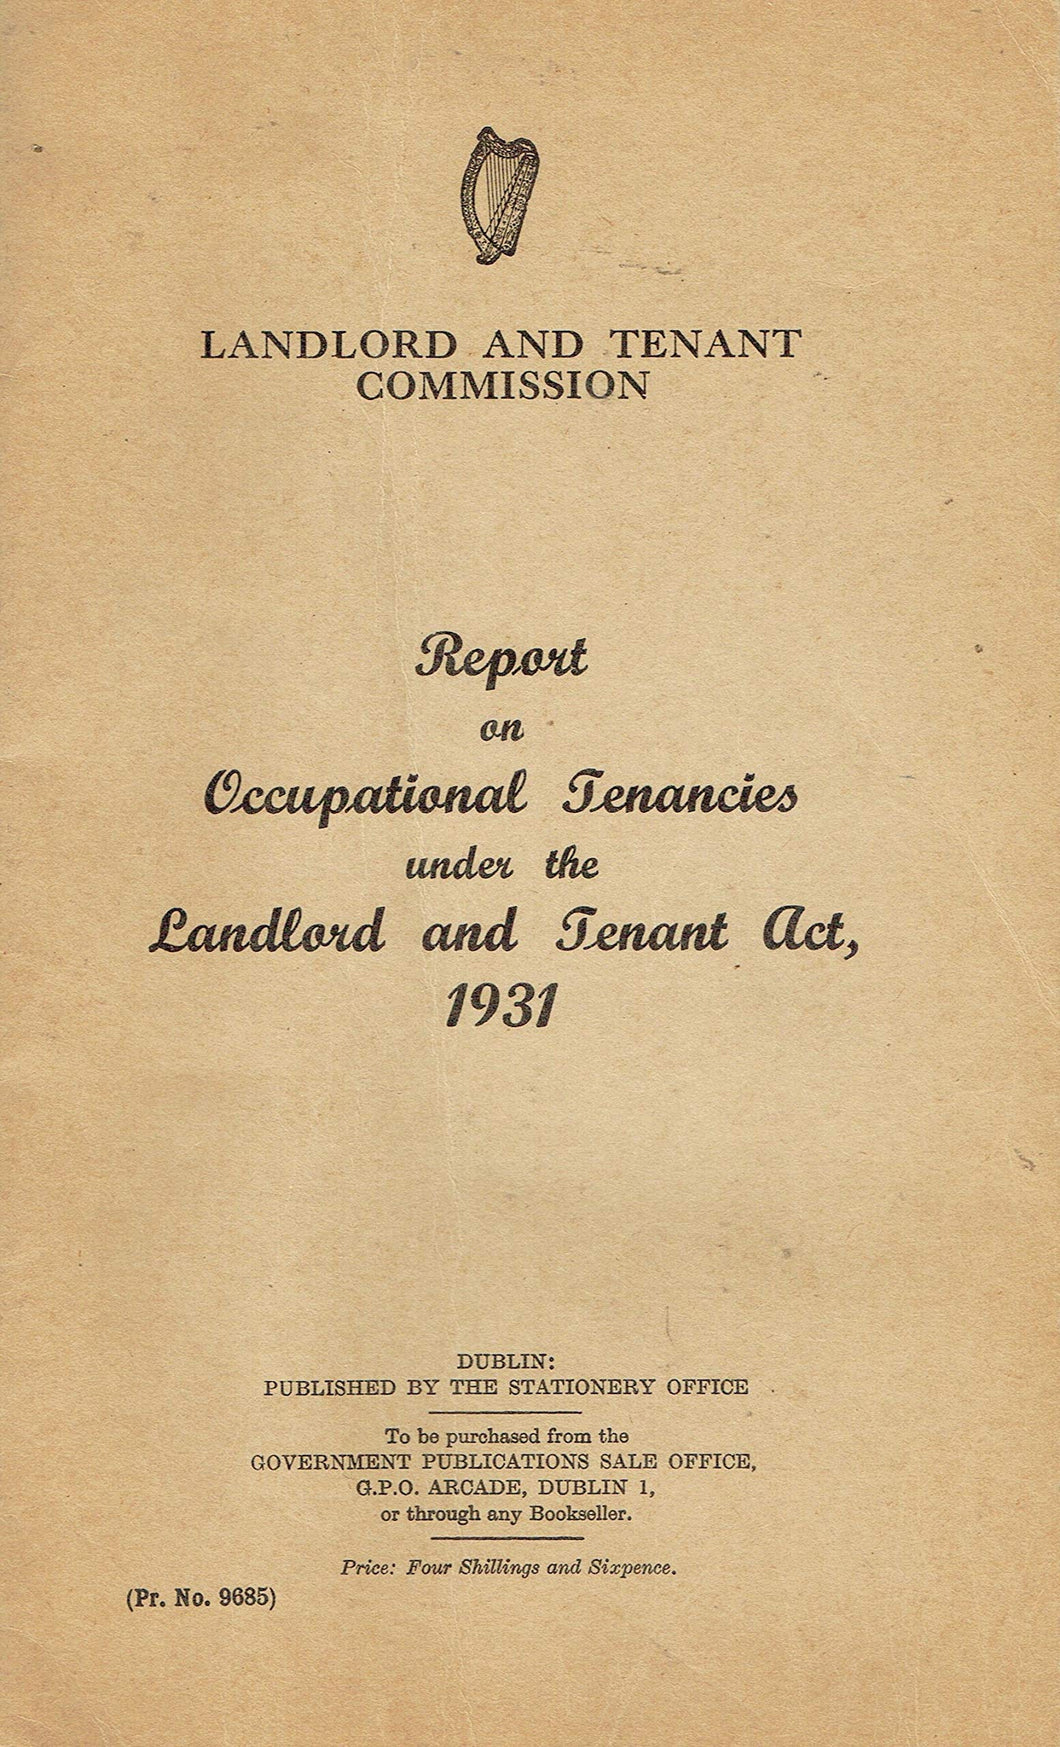 Landlord and Tenant Commission: Report on Occupational Tenancies under the Landlord and Tenant Act, 1931